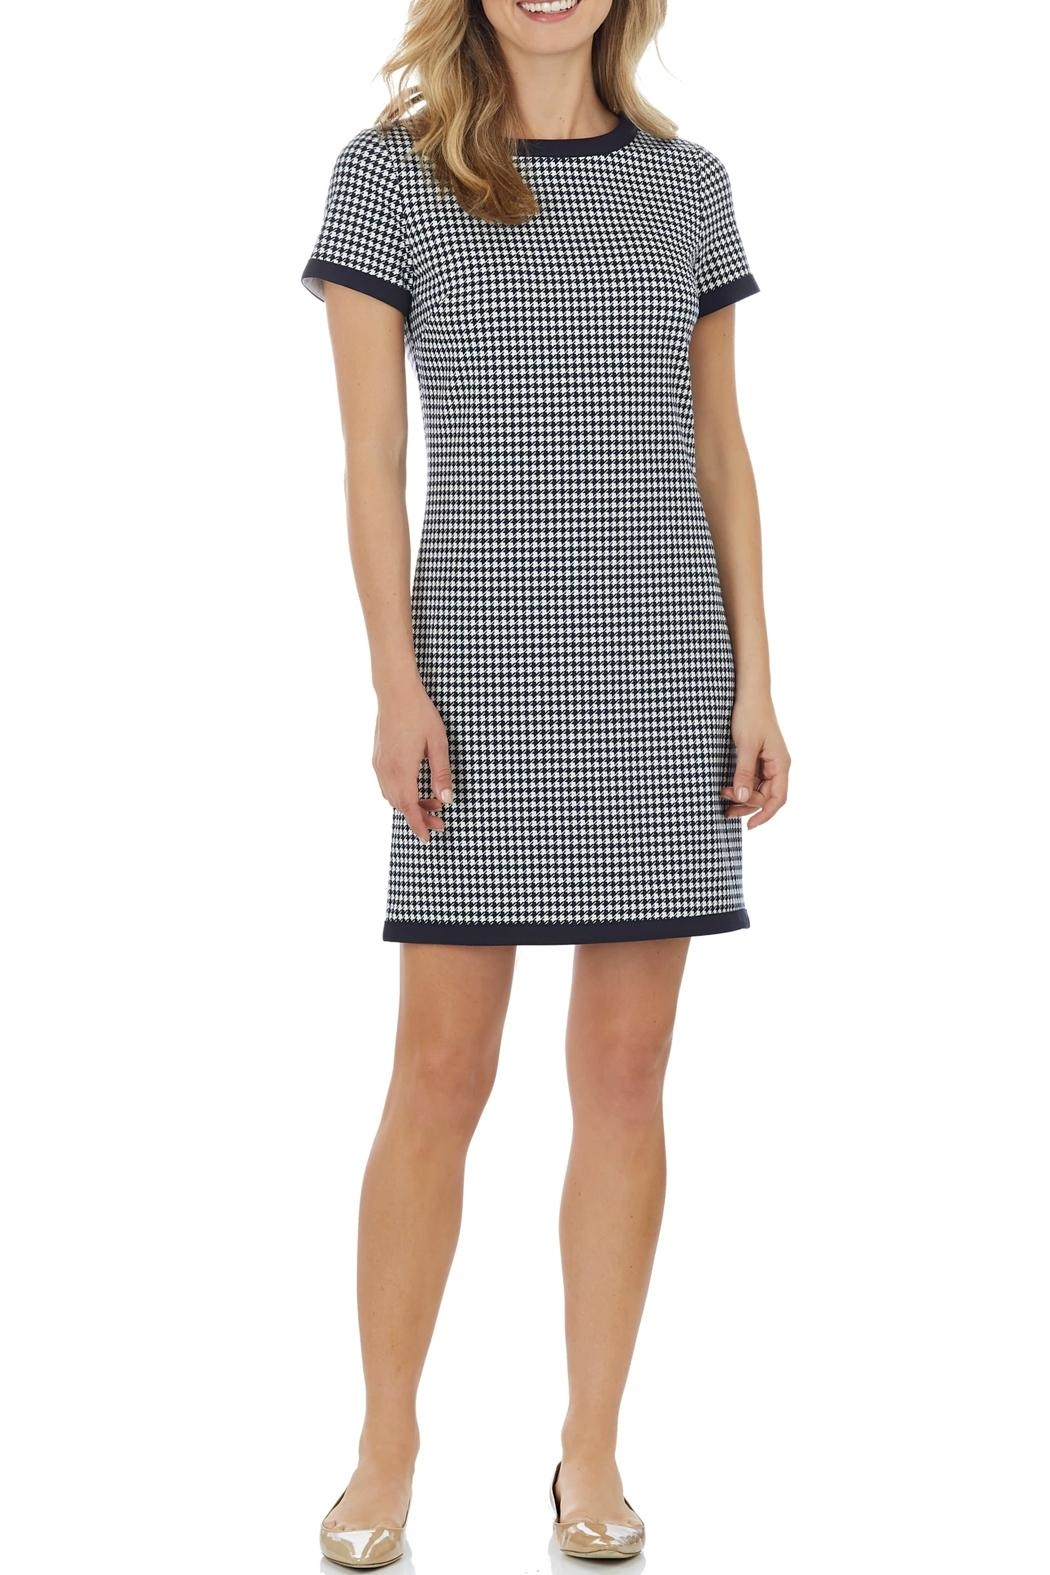 Jude Connally Parker Ponte Dress - Main Image